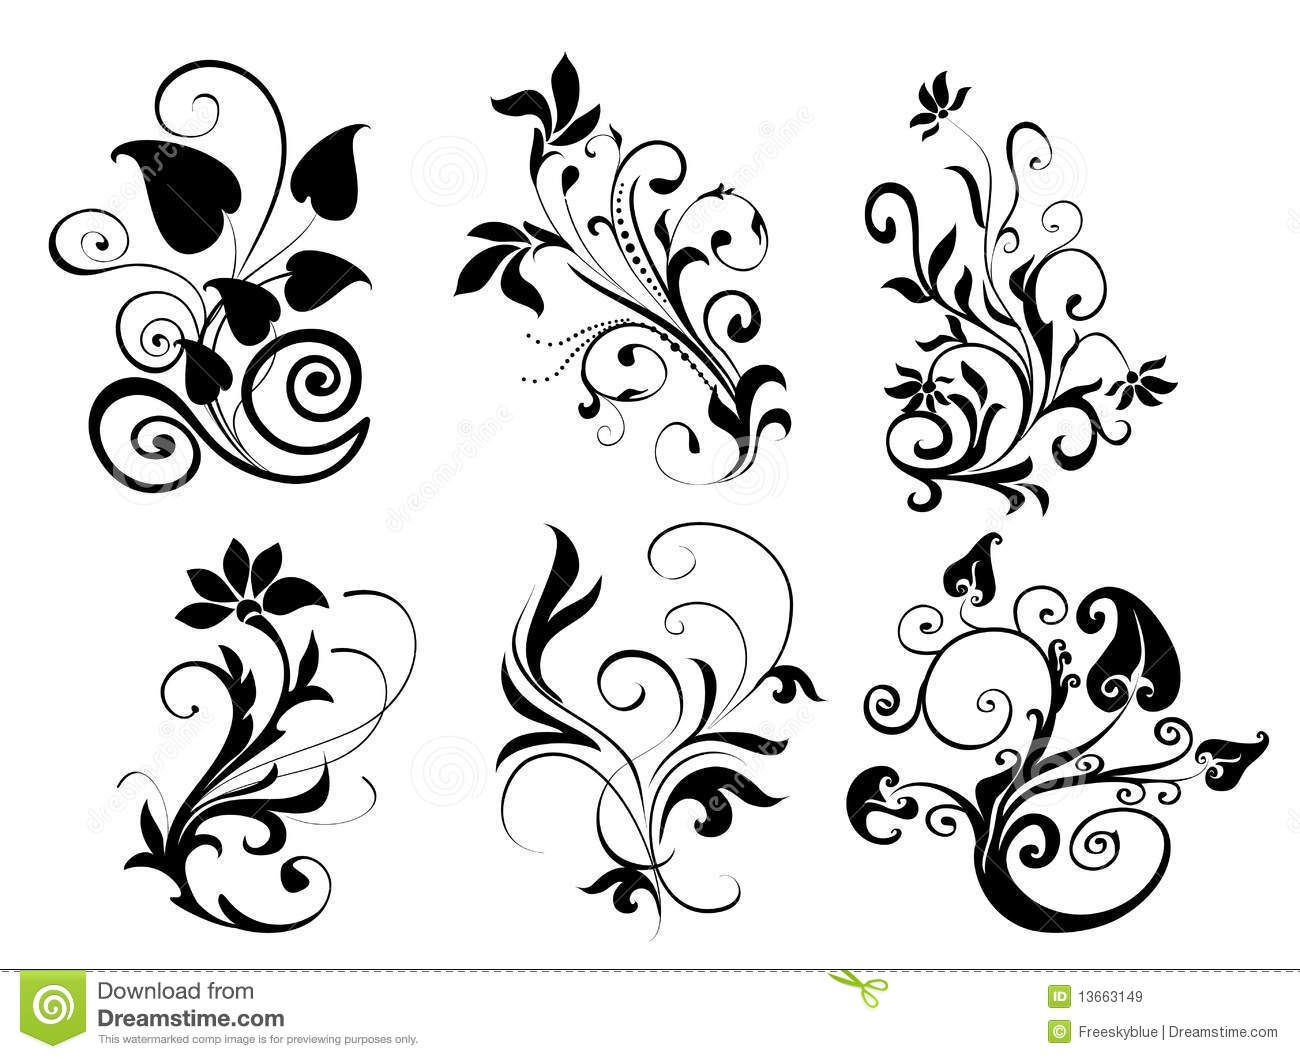 Simple Flower Designs For Pencil Drawing Google Search Flower